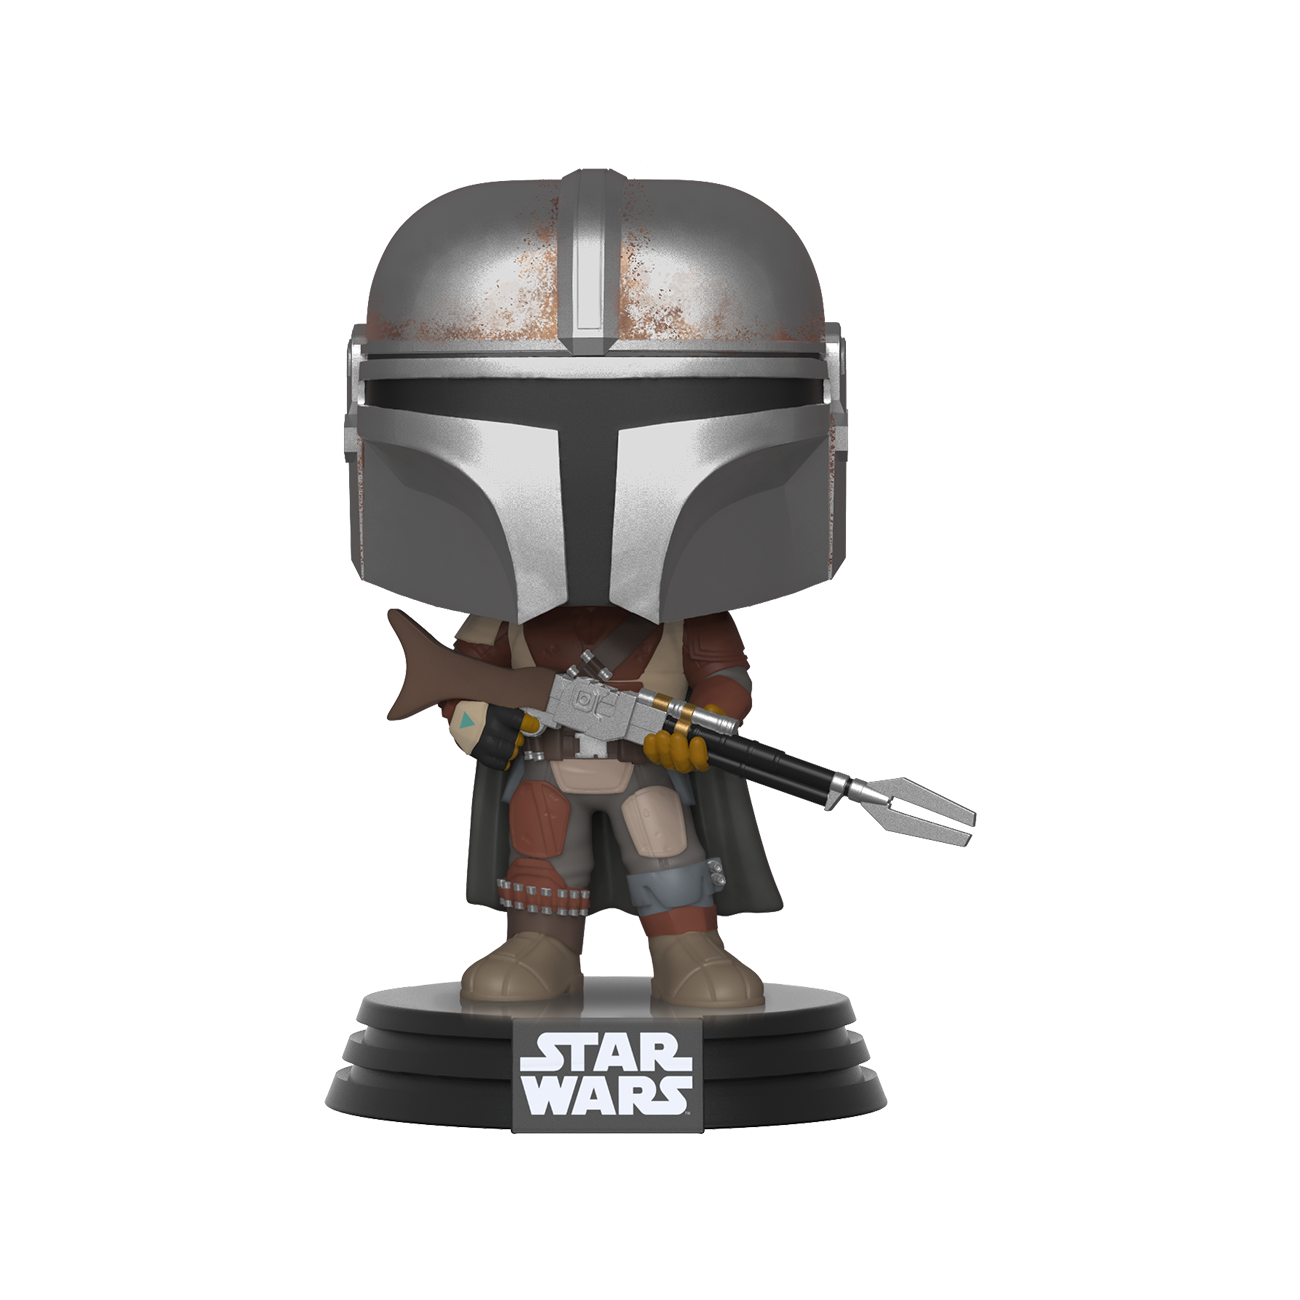 TM The Mandalorian Funko Pop! Bobble Head Toy 2